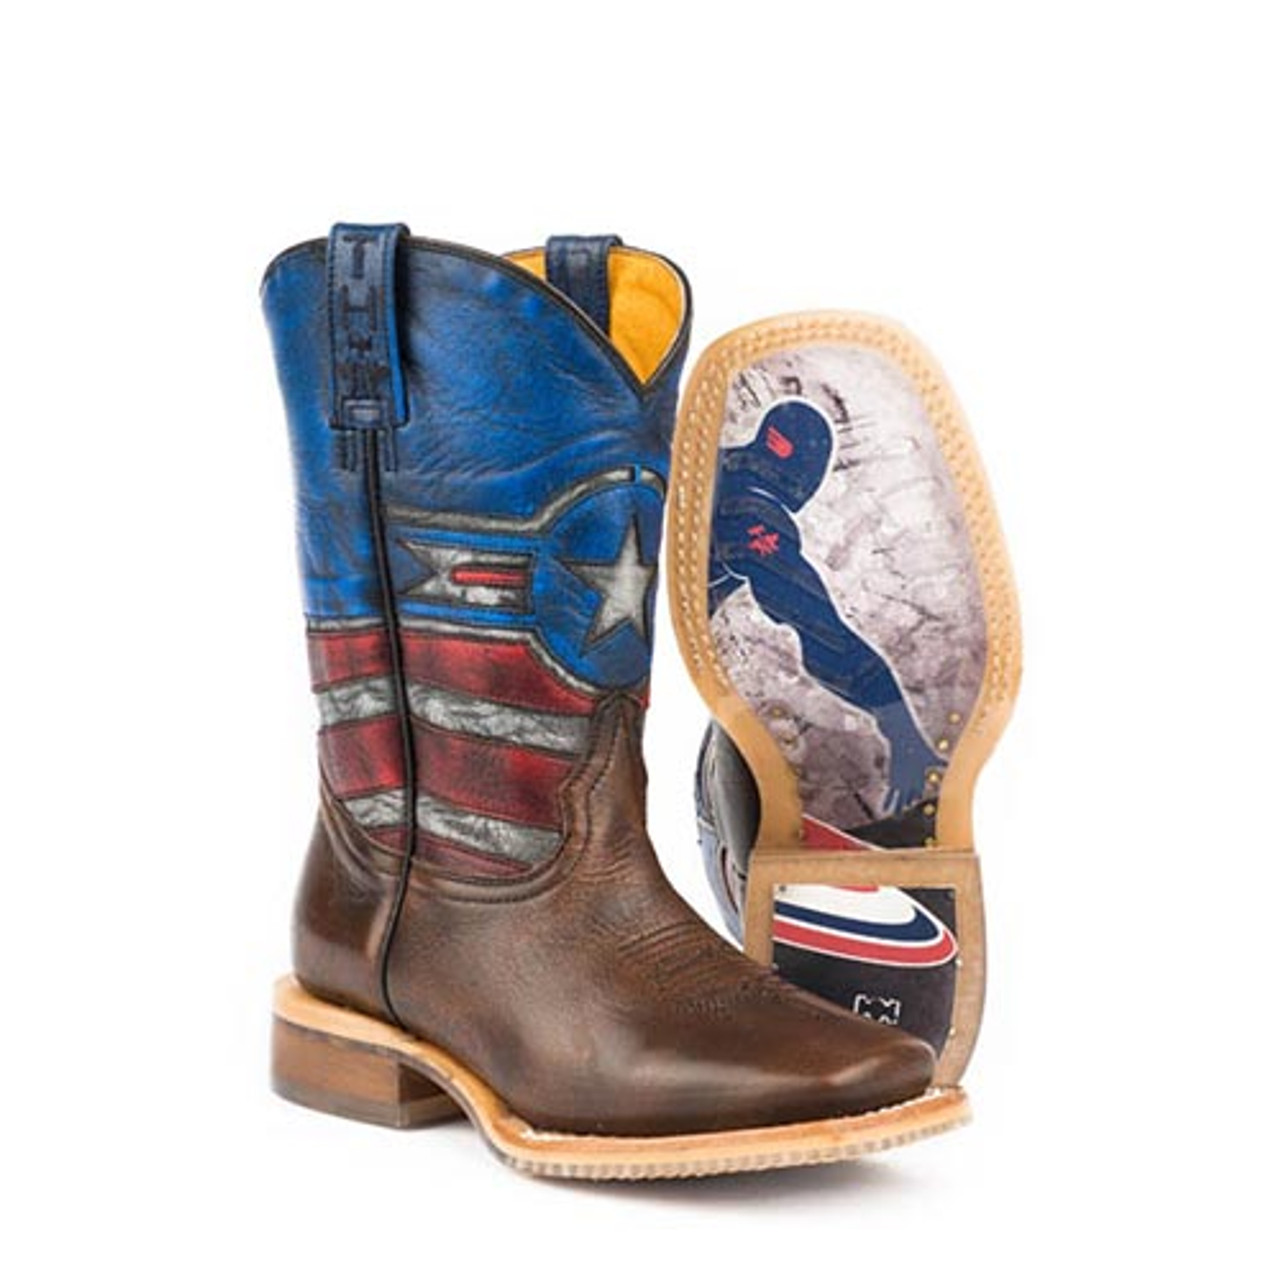 d27c20d3315 Tin Haul Kids Boots - Little Justice w/ American Hero Sole